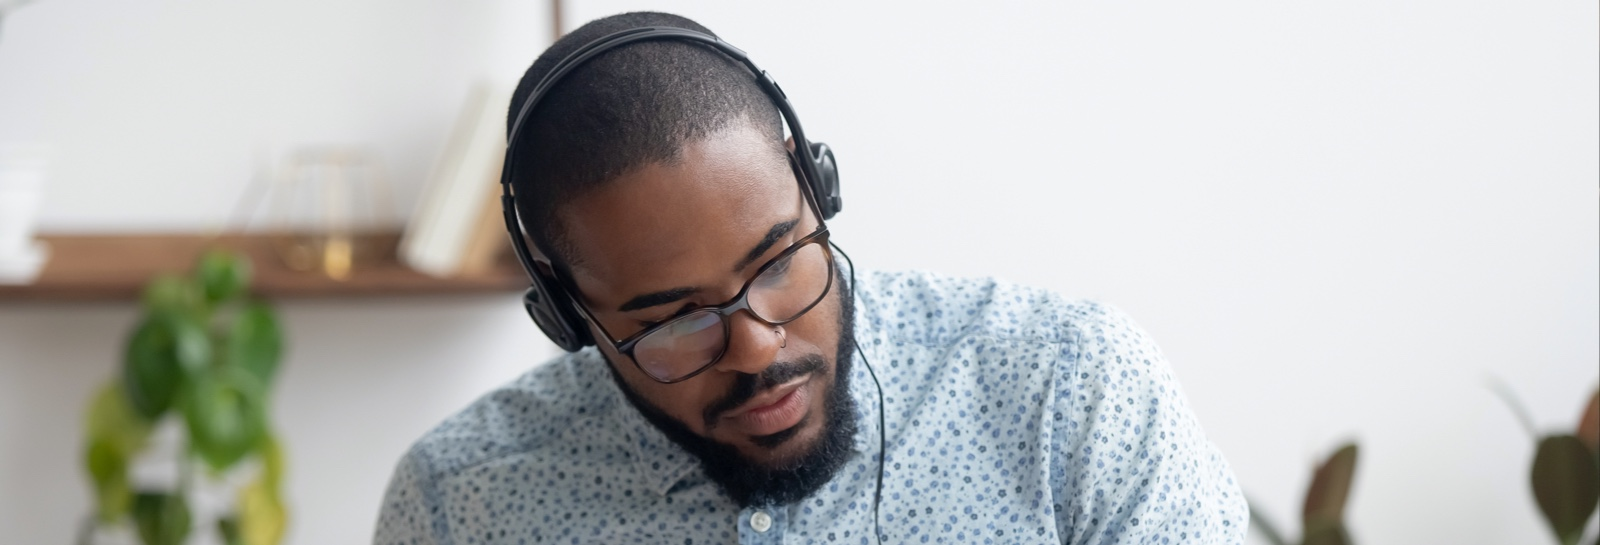 a black man with headphones listening to music